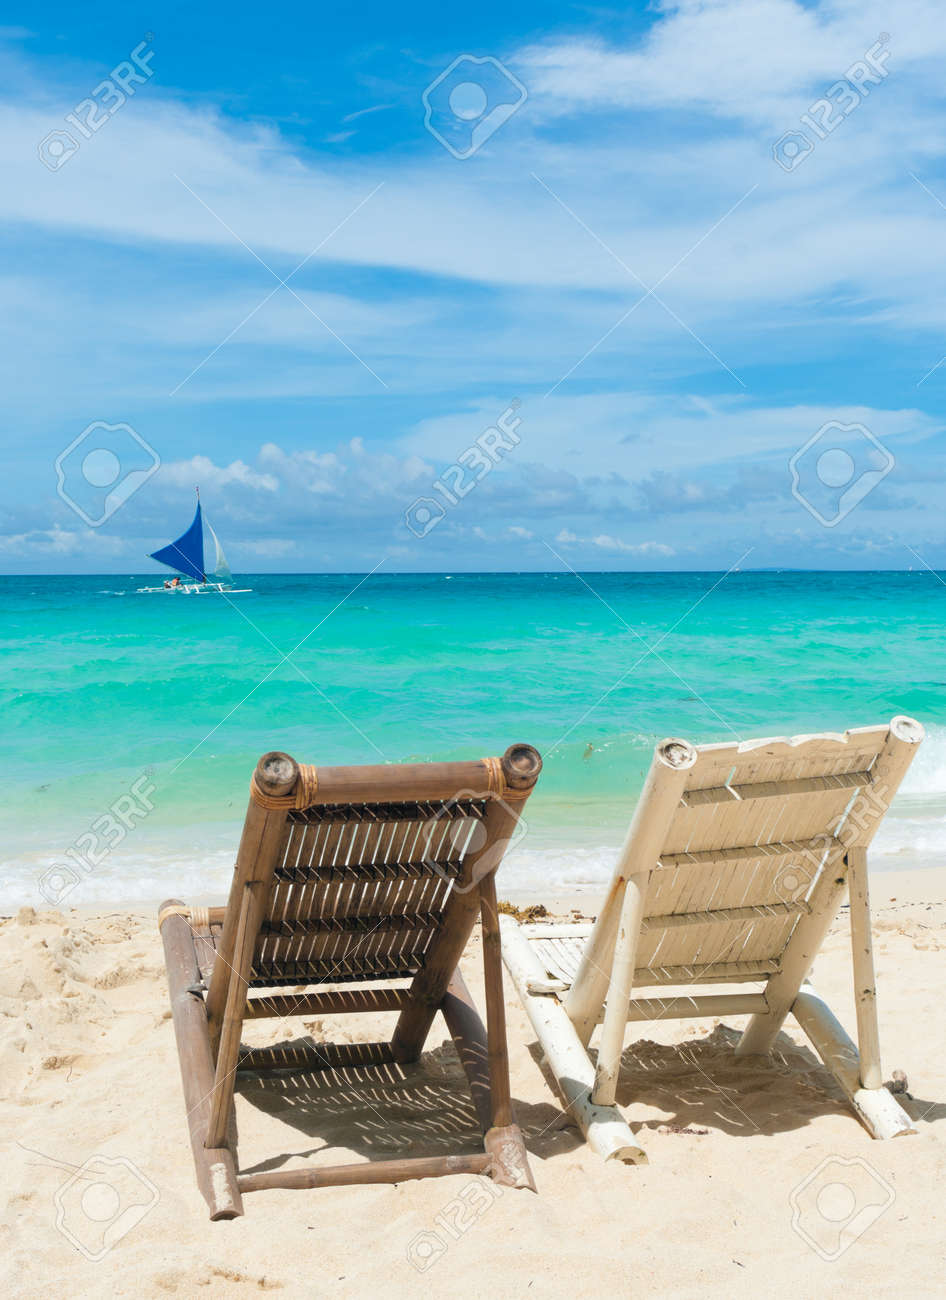 Beach with chairs - Stock Photo Tropical Beach With Two Beach Chairs Facing The Blue Sea